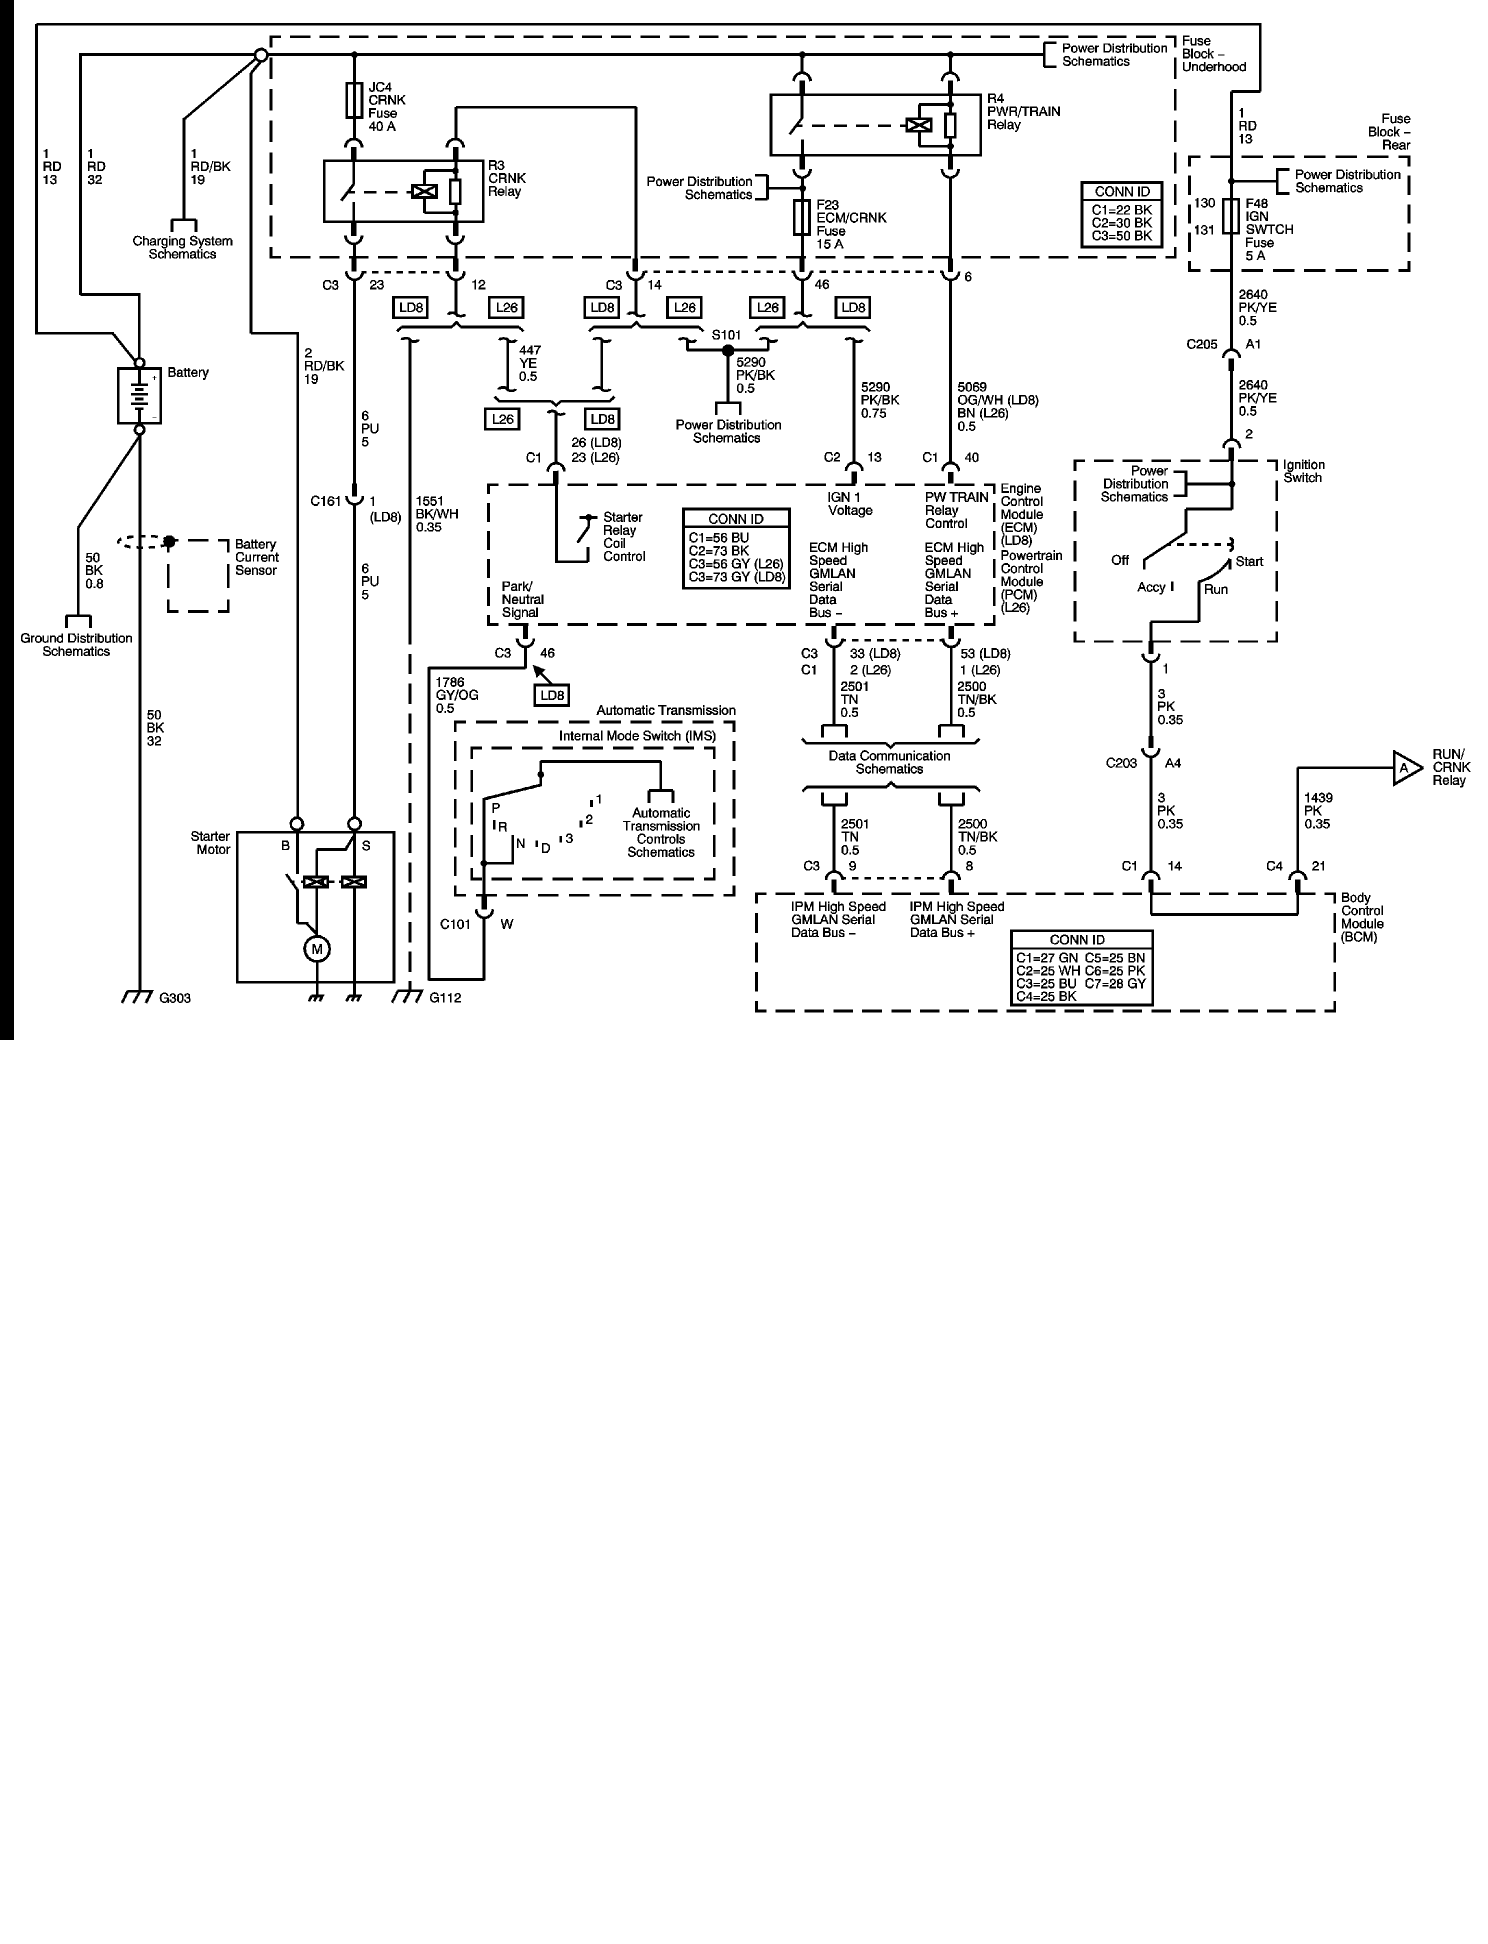 2006 buick lucerne wiring diagram explore schematic wiring diagram \u2022 buick lucerne fuel tank 07 buick lucerne my car wont start im pretty sure its an rh justanswer com 2006 buick lucerne radio wiring diagram 2006 buick lucerne starter wiring diagram